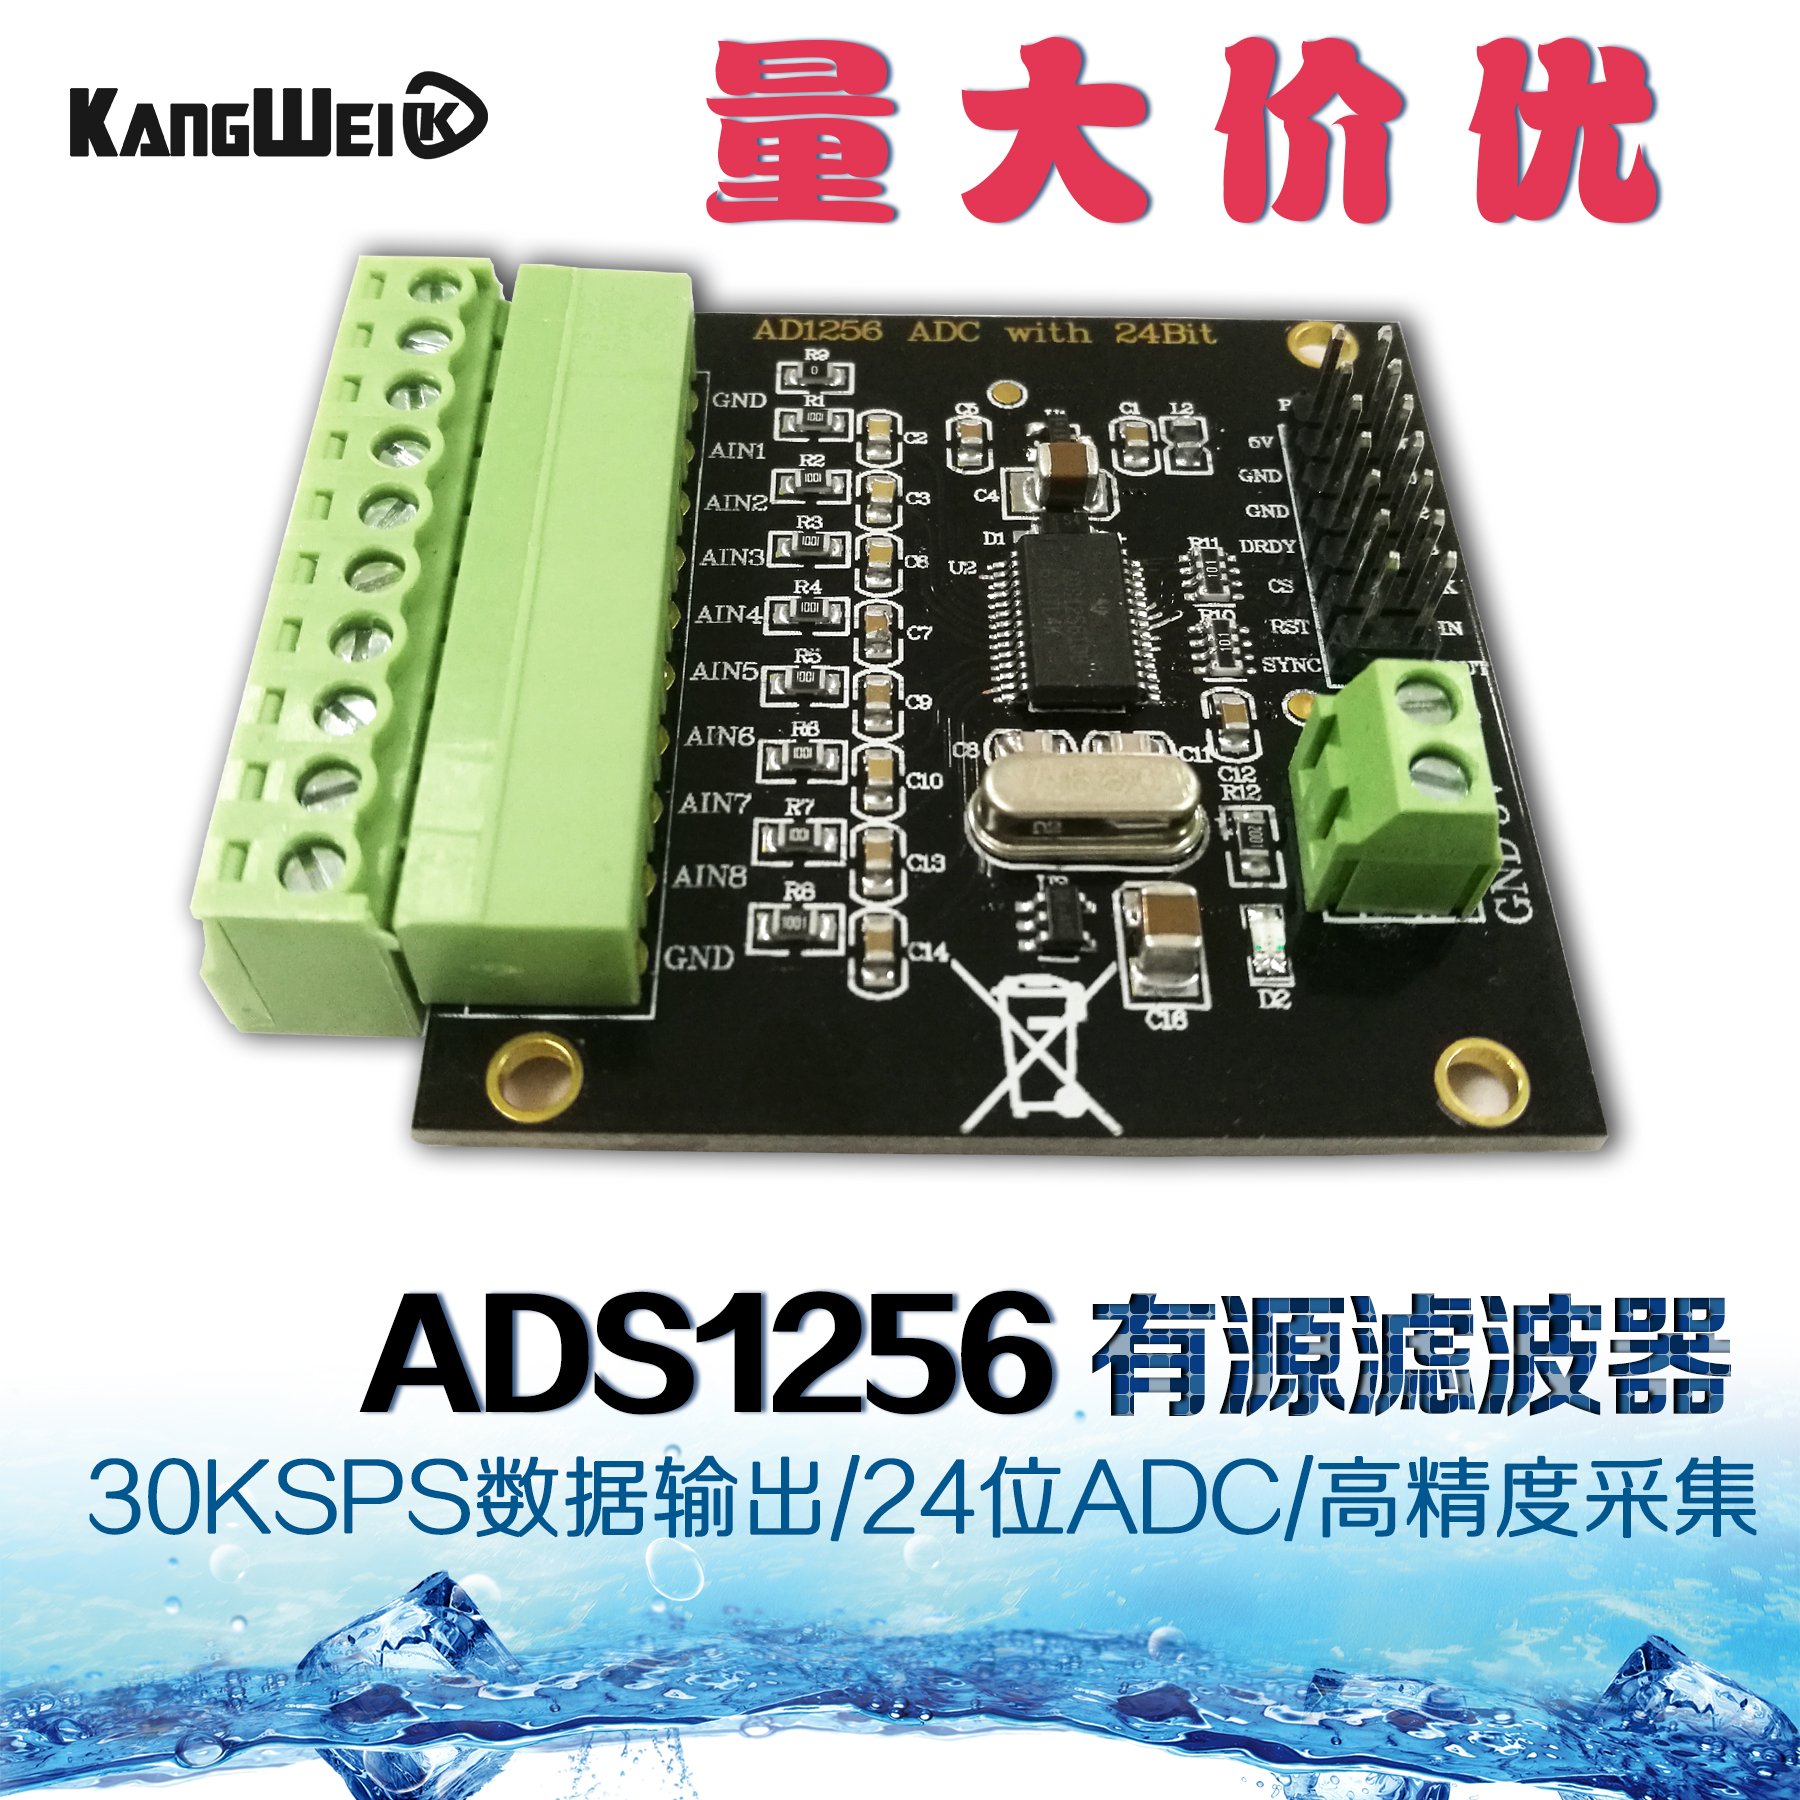 ADS1256 24 Bit ADC AD Module High Precision ADC Acquisition Data Acquisition Card ADC ad7124 ad7124 module 24 bit adc ad module high precision adc acquisition data acquisition card